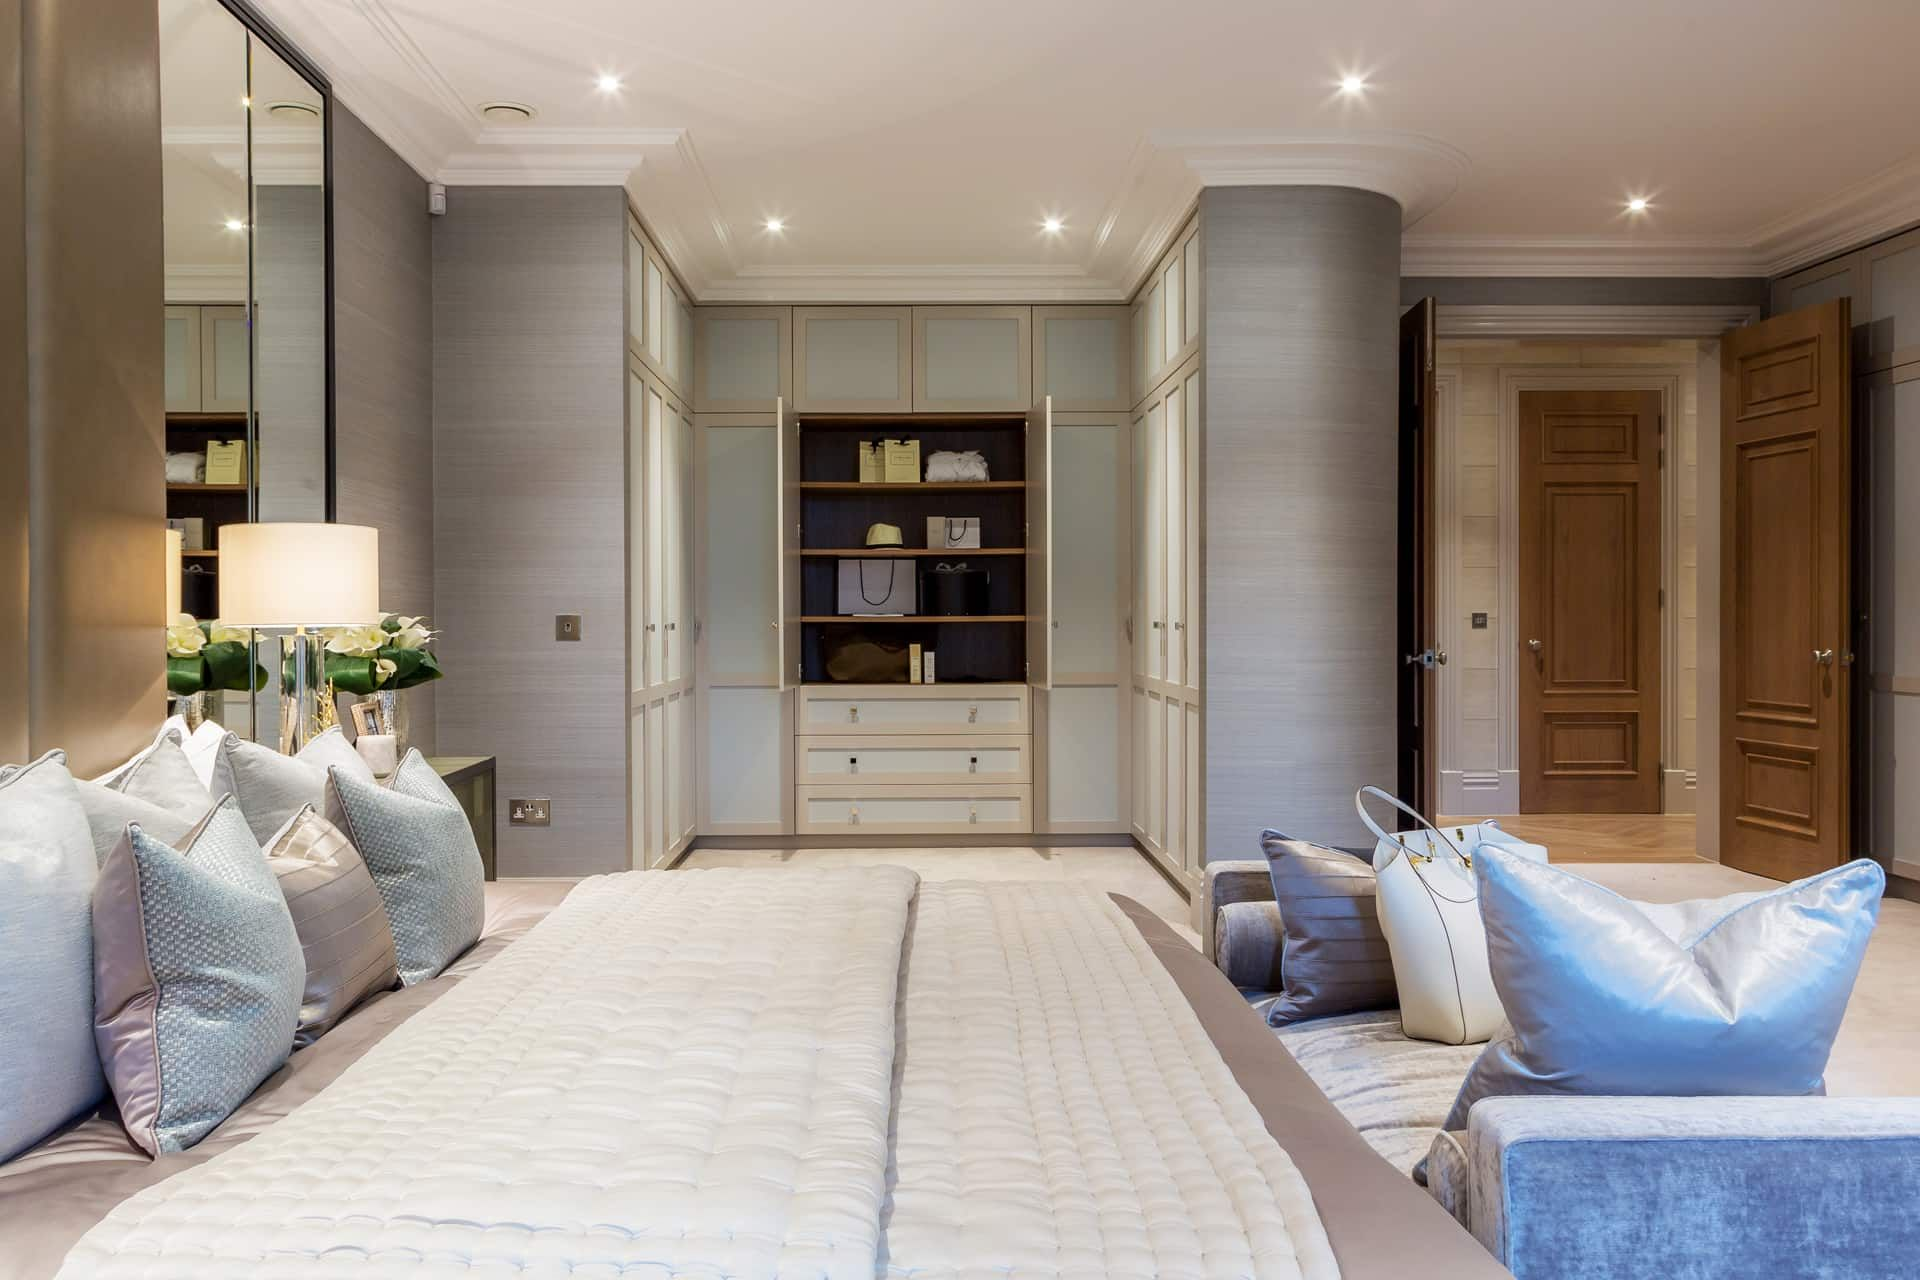 One of alexander james interiors  latest projects  beautiful show home at the luxurious knowle hill park development in cobham surrey also showhome interior design all things decor pinterest rh